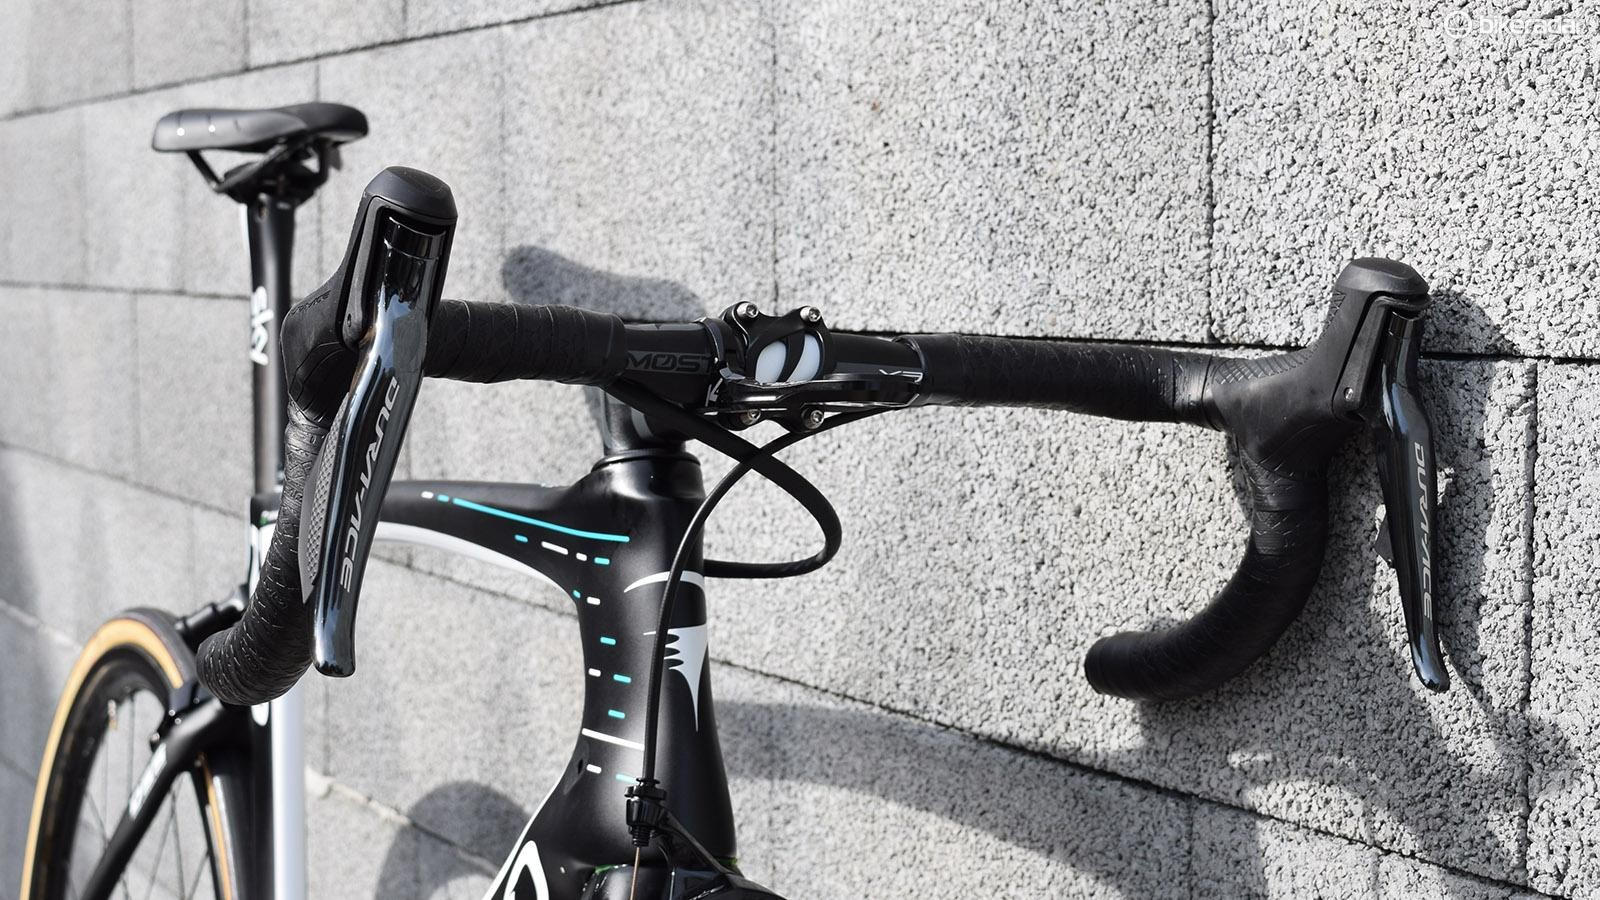 A look at the front end of Thomas' Pinarello